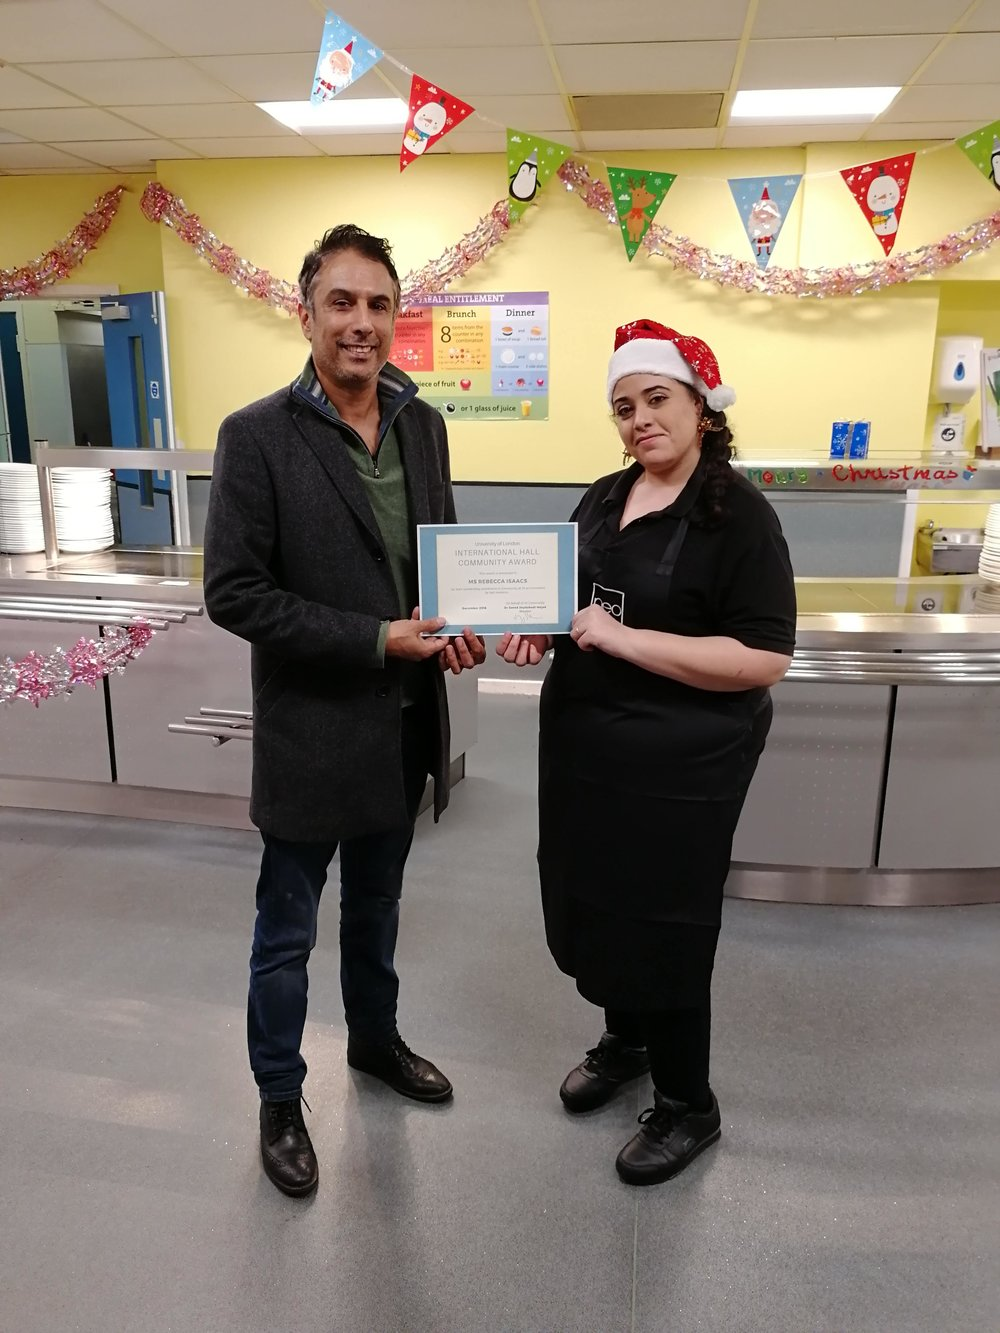 The Warden, Saeed, with December Community Award winner Becci Isaacs.